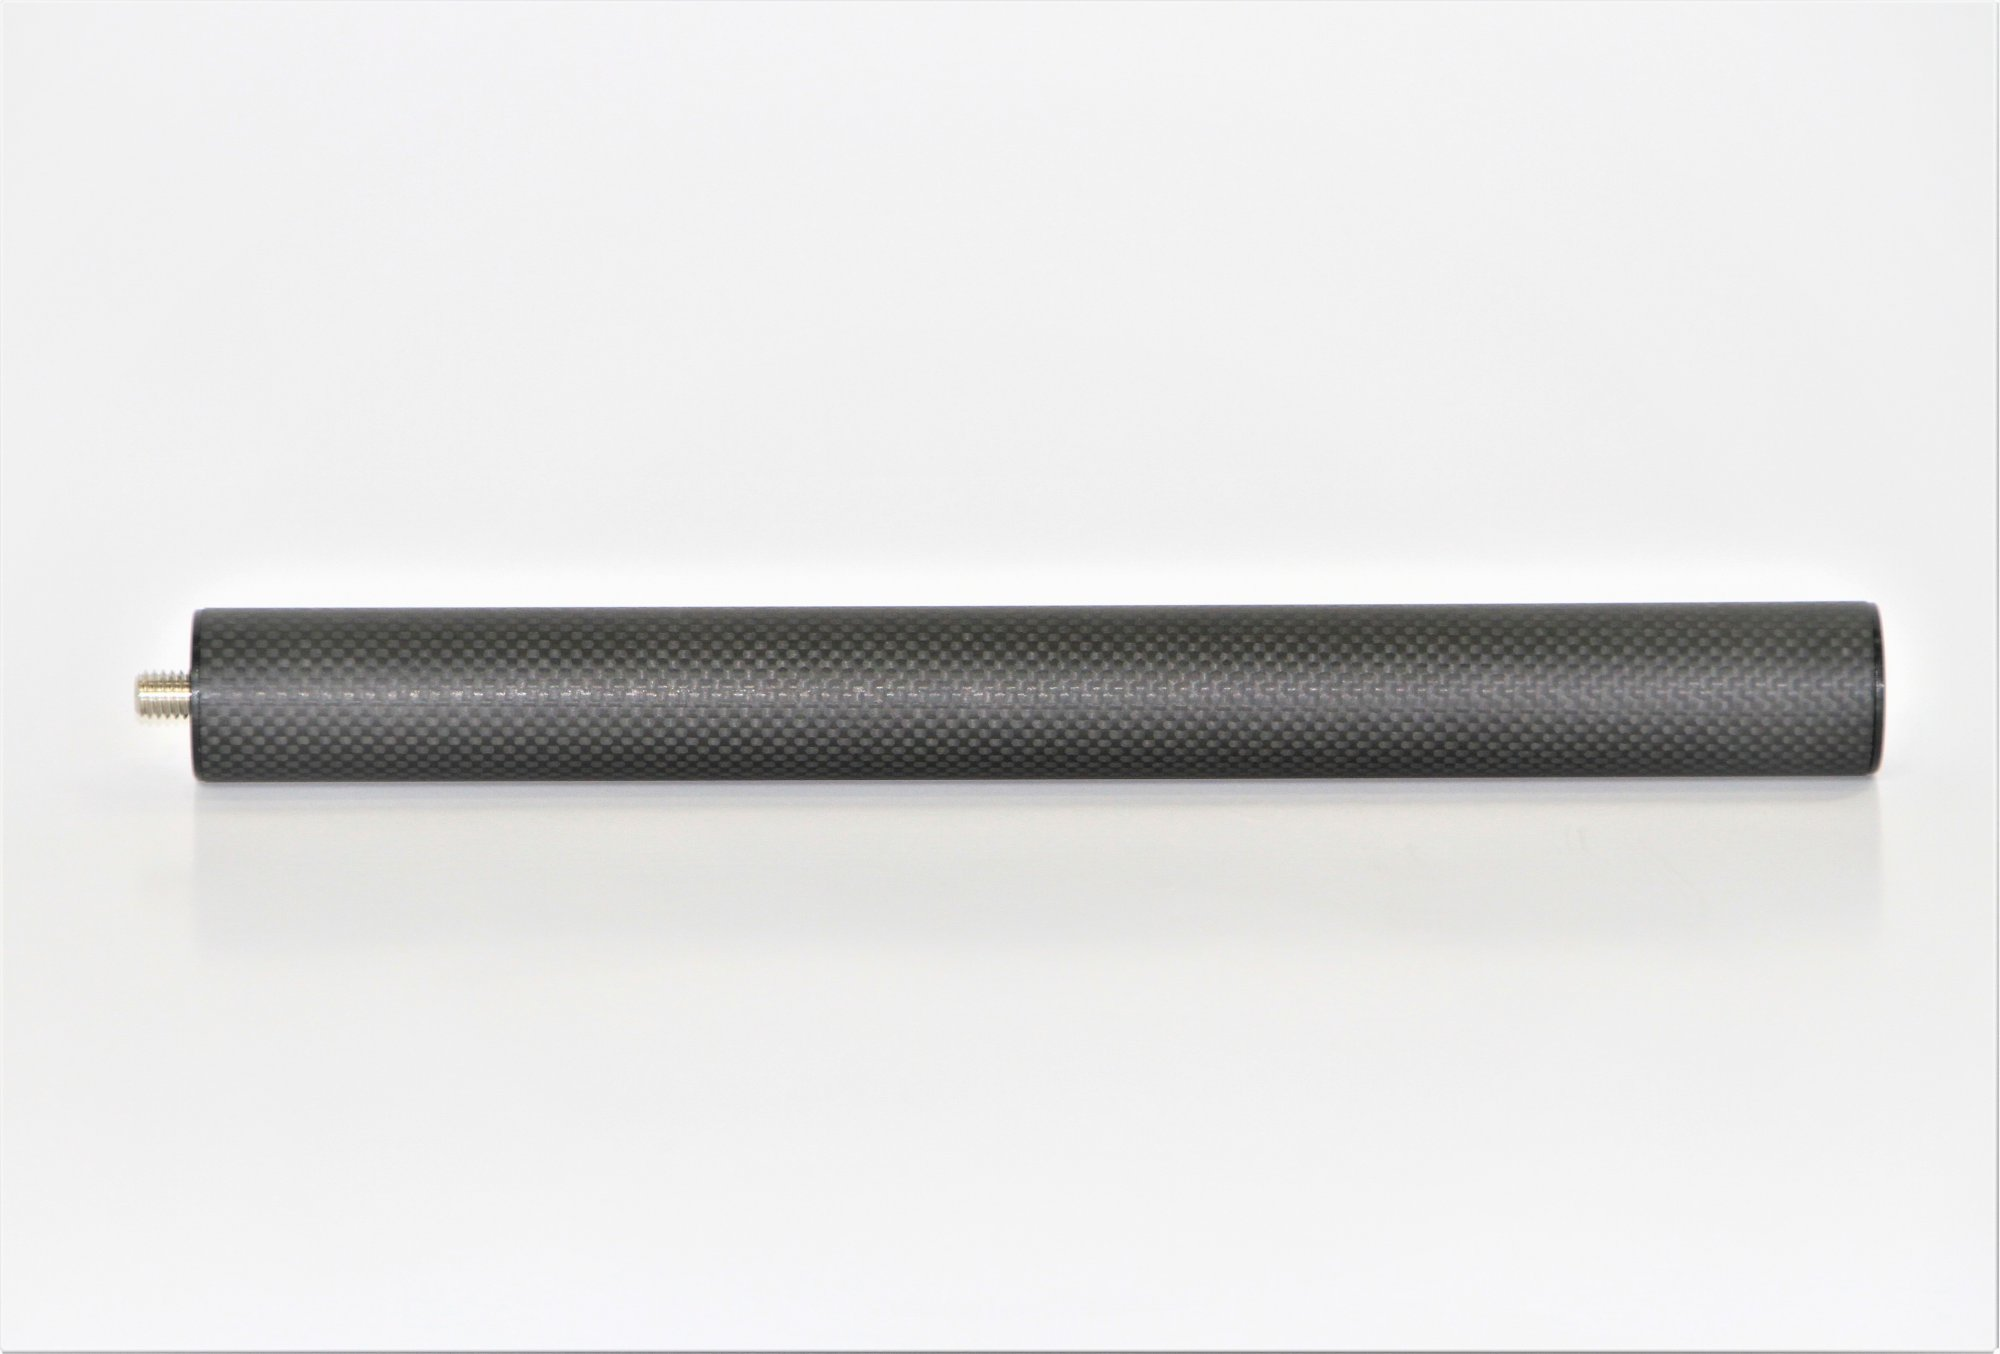 12 Carbon Fiber 32mm Leg Extension